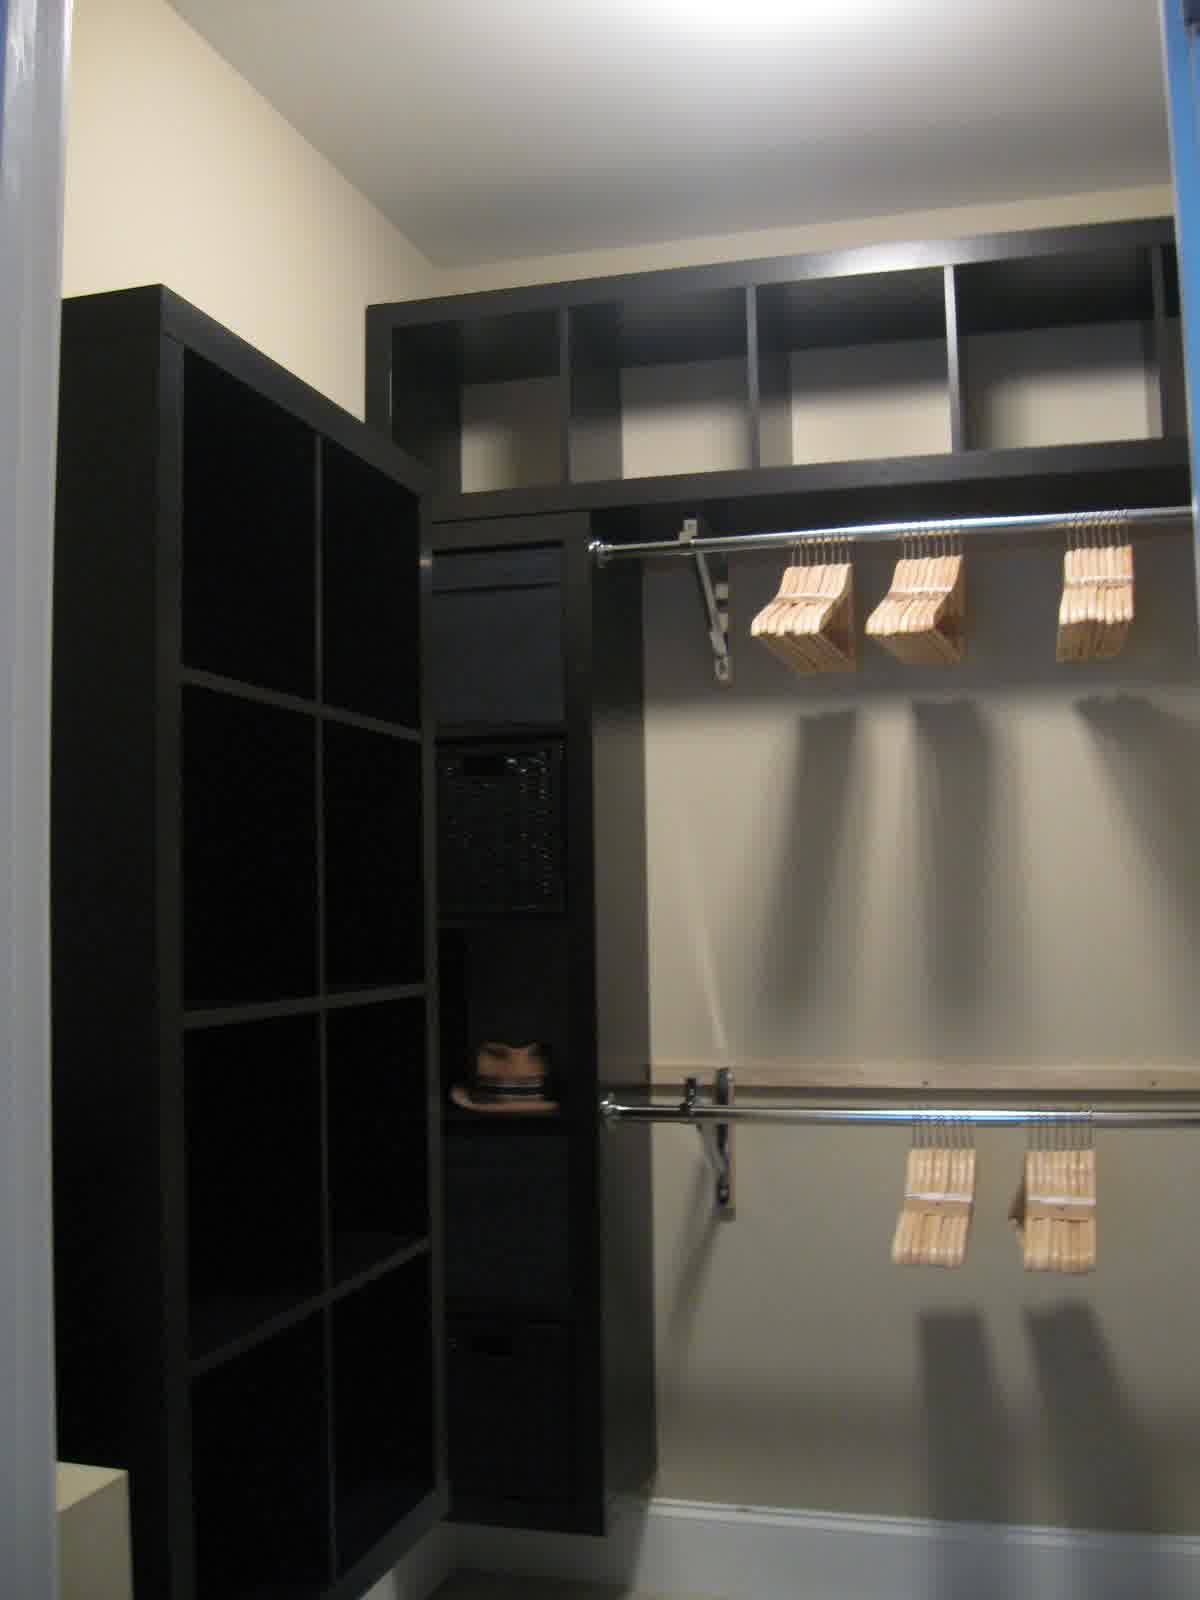 Portable Wardrobe Closet Ikea | Closet Storage Solutions Ikea | Ikea Closet Storage